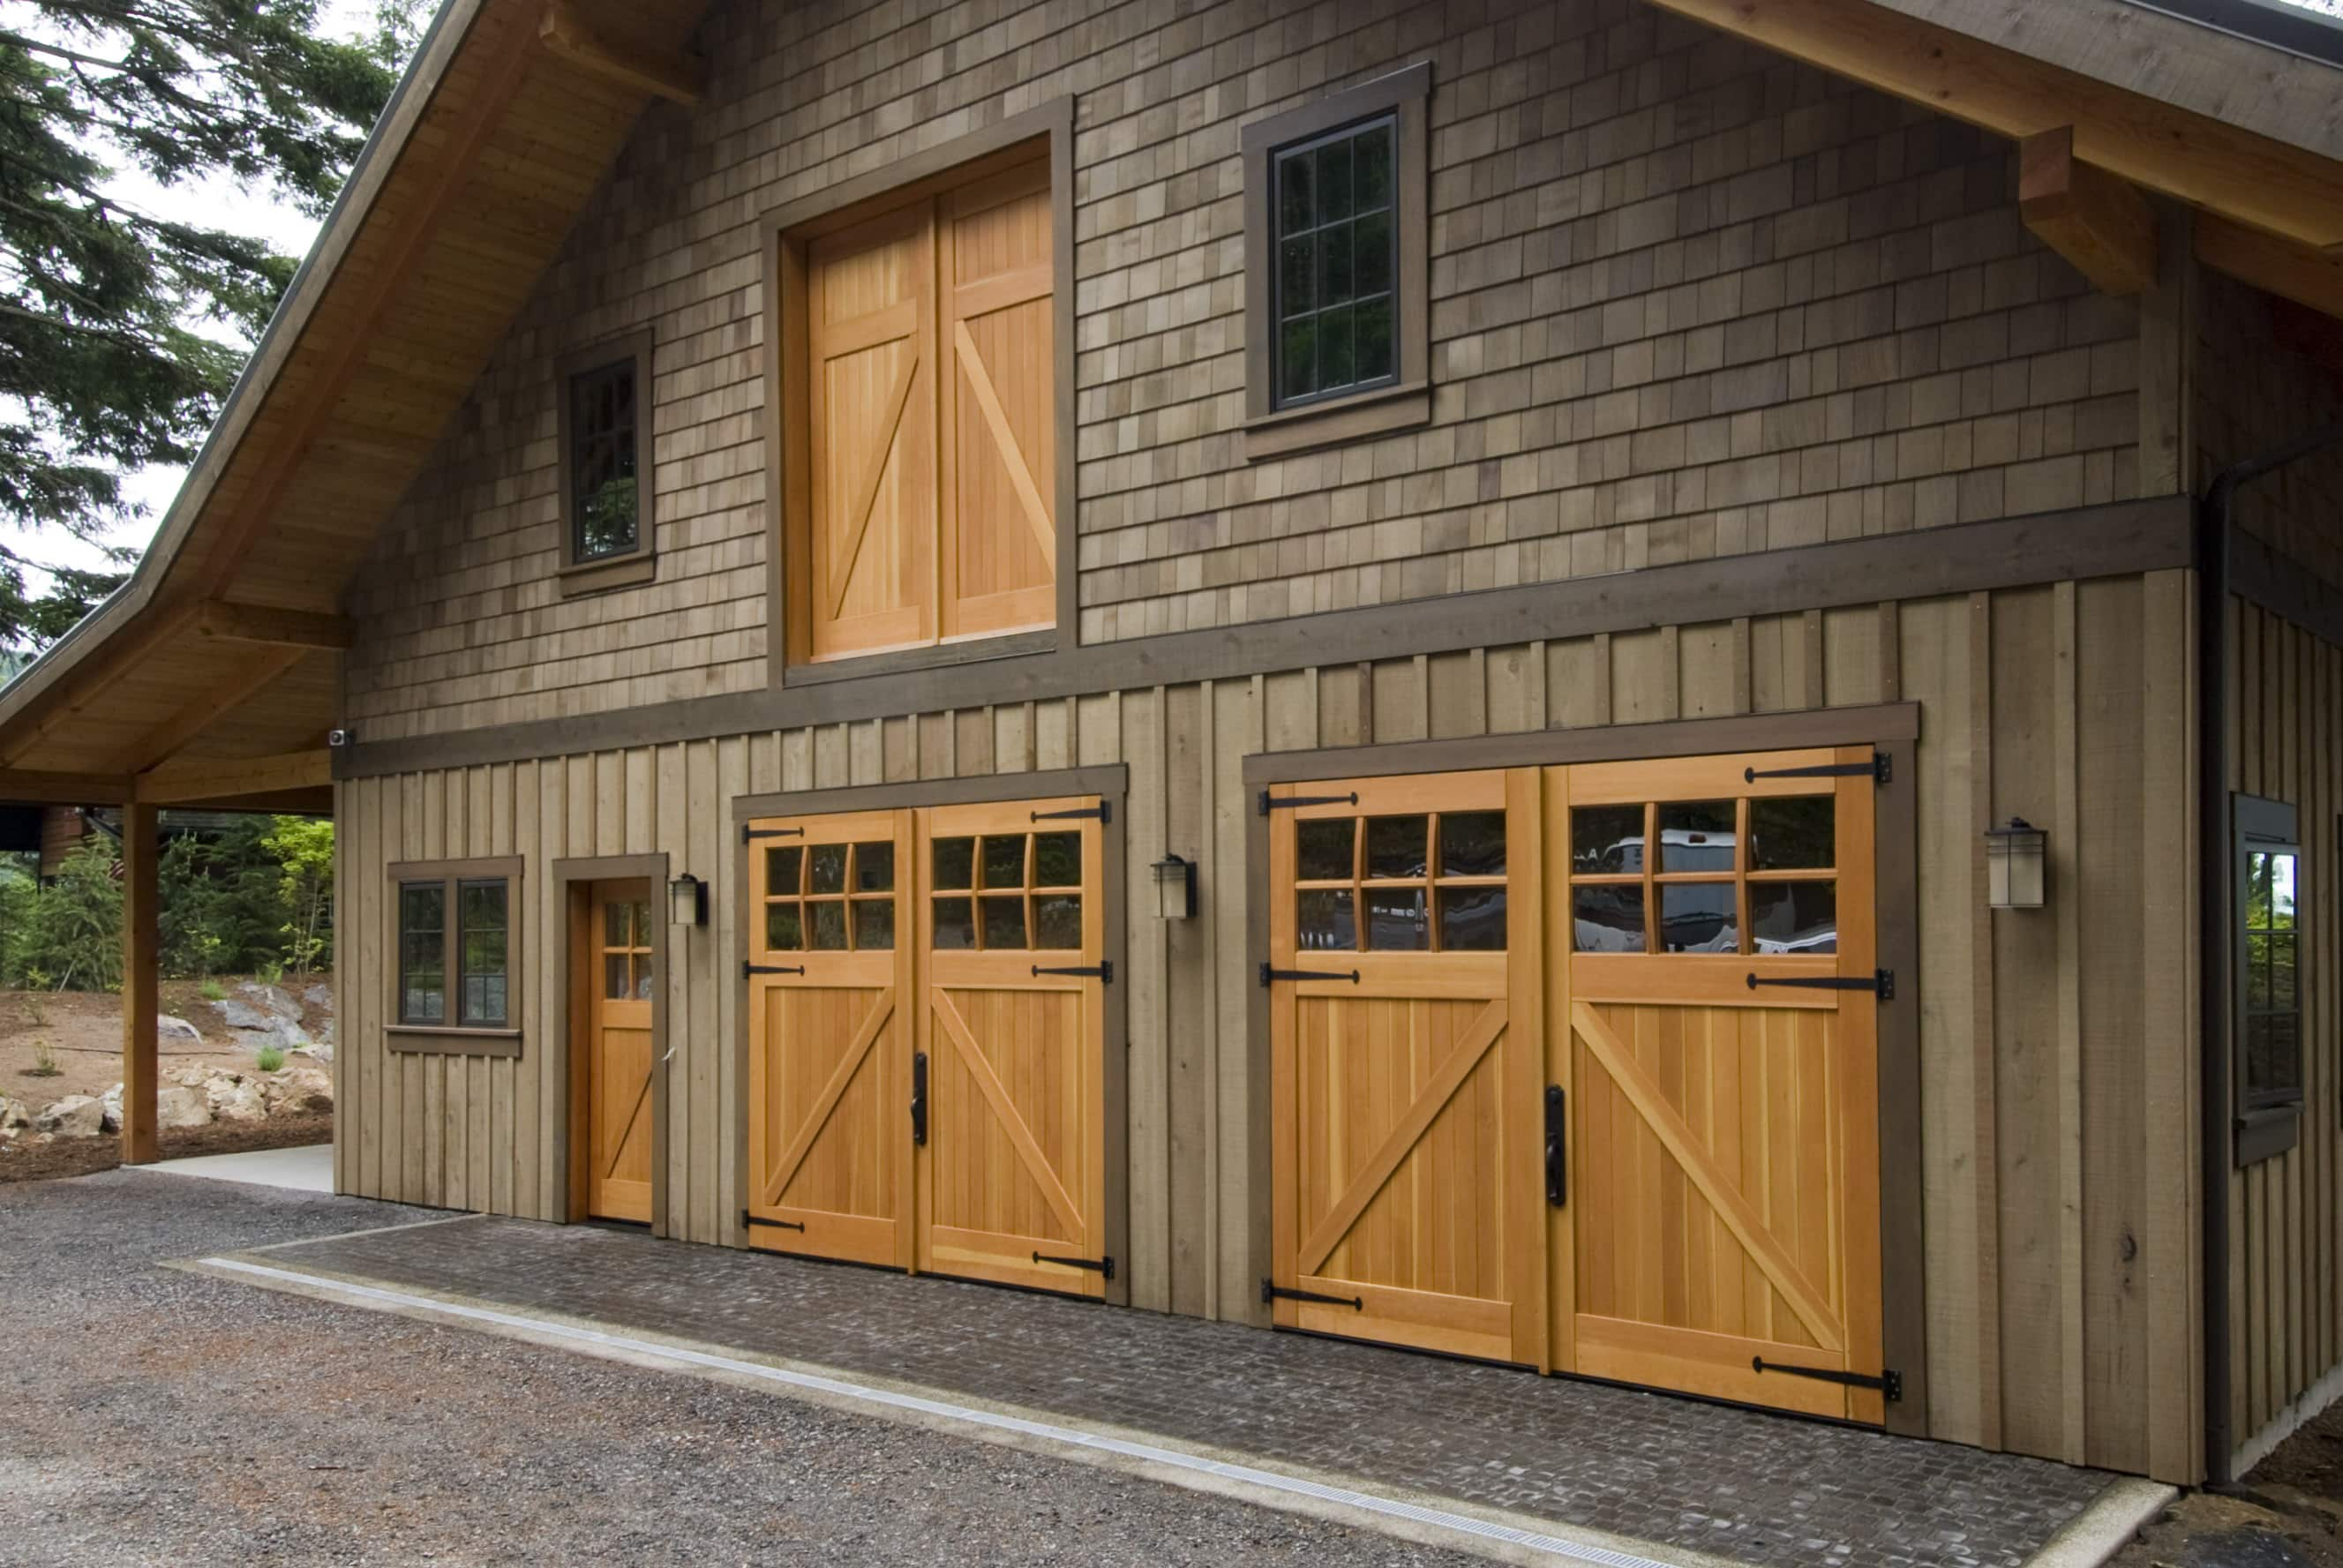 49. CARRIAGE: CL05 Design – Square top, (2x3) lites w/ curved mullions, Z brace w/ tongue + groove panels, Western Red Cedar, w/ bean tip strap hinges & ENTRY: ECL04 Design – Square top, (2x2) lites w/ curved mullions, Z brace w/ tongue + groove panels, Western Red Cedar, w/ butt hinges & LOFT: CL14 Design – Square top, Z brace w/ tongue + groove panels, Western Red Cedar, and butt hinges; Orcas Island, WA